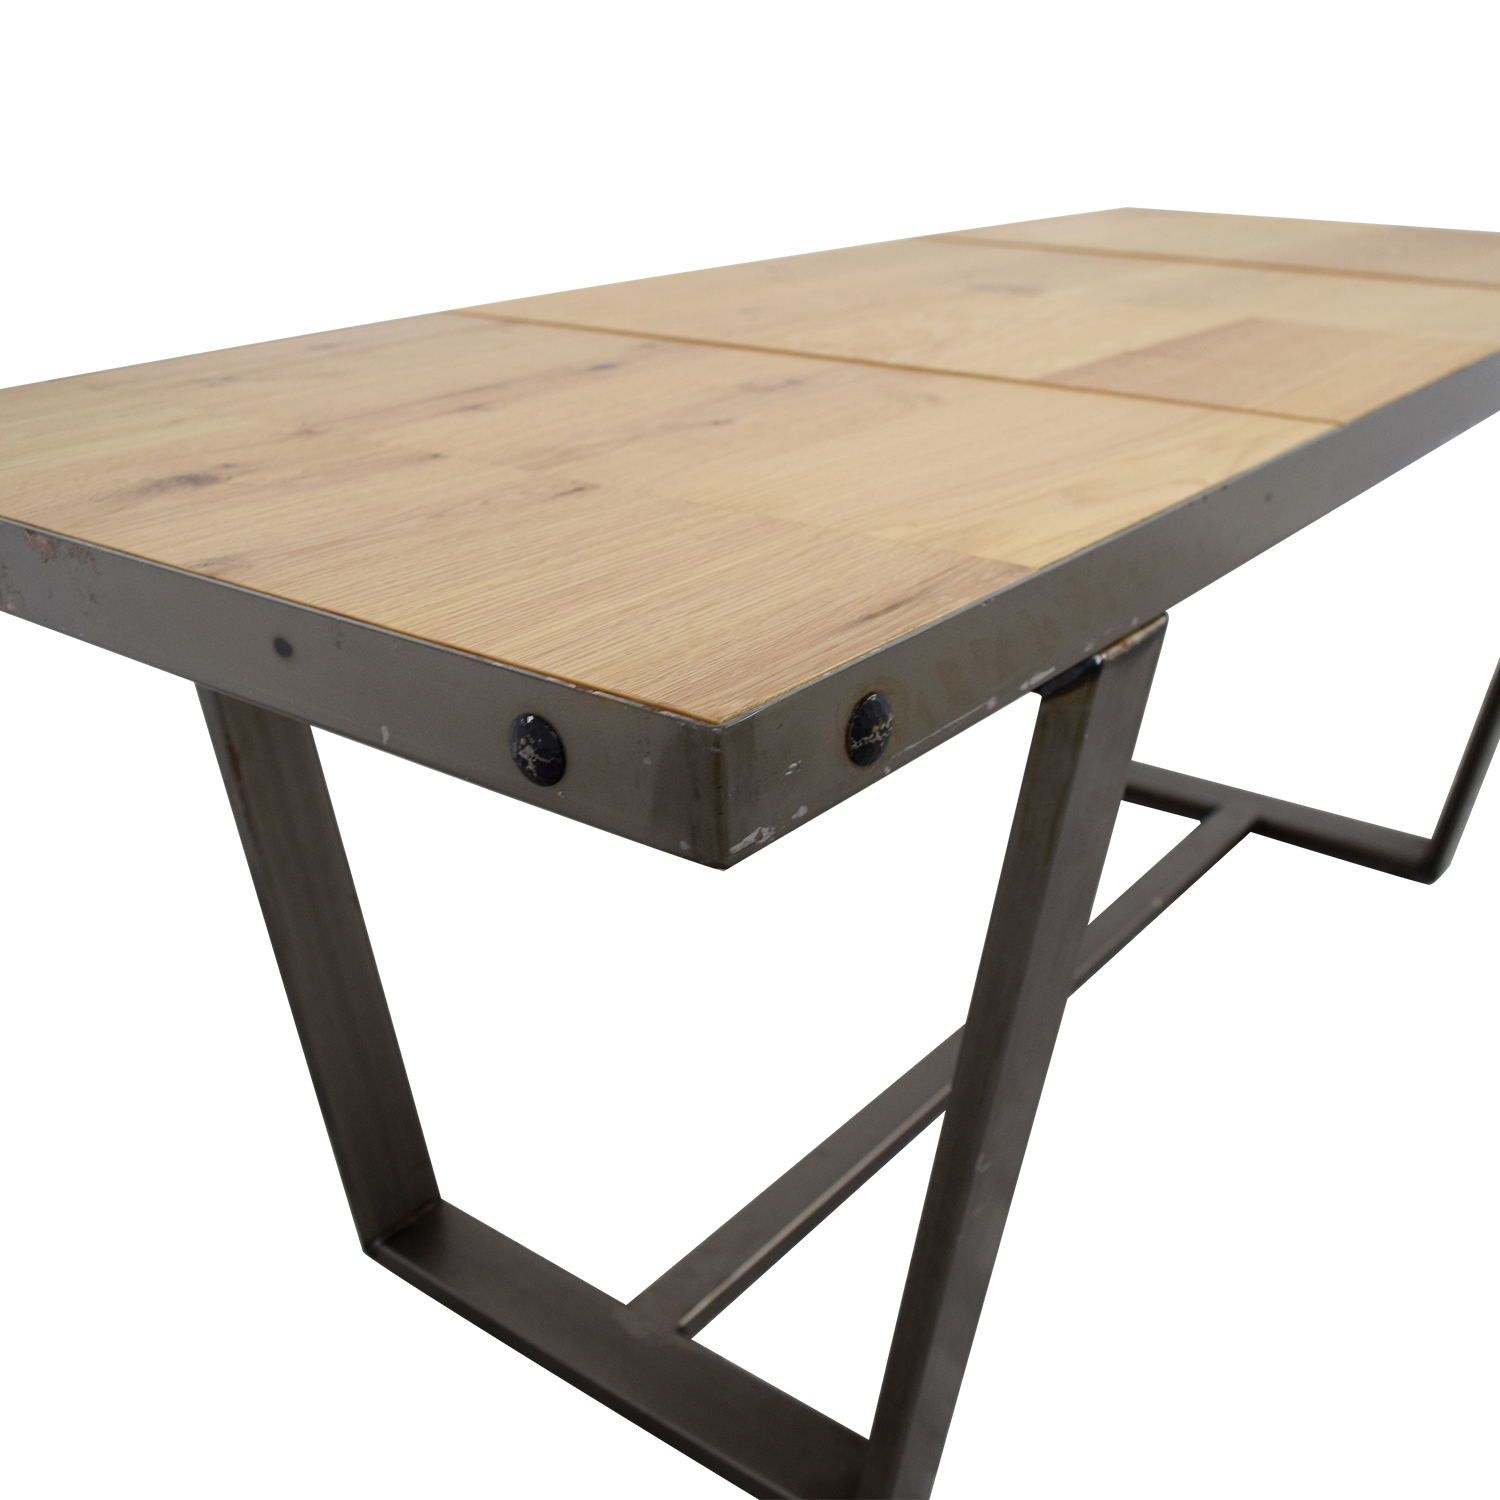 Patrick Cain Beech and Metal Dining Table sale